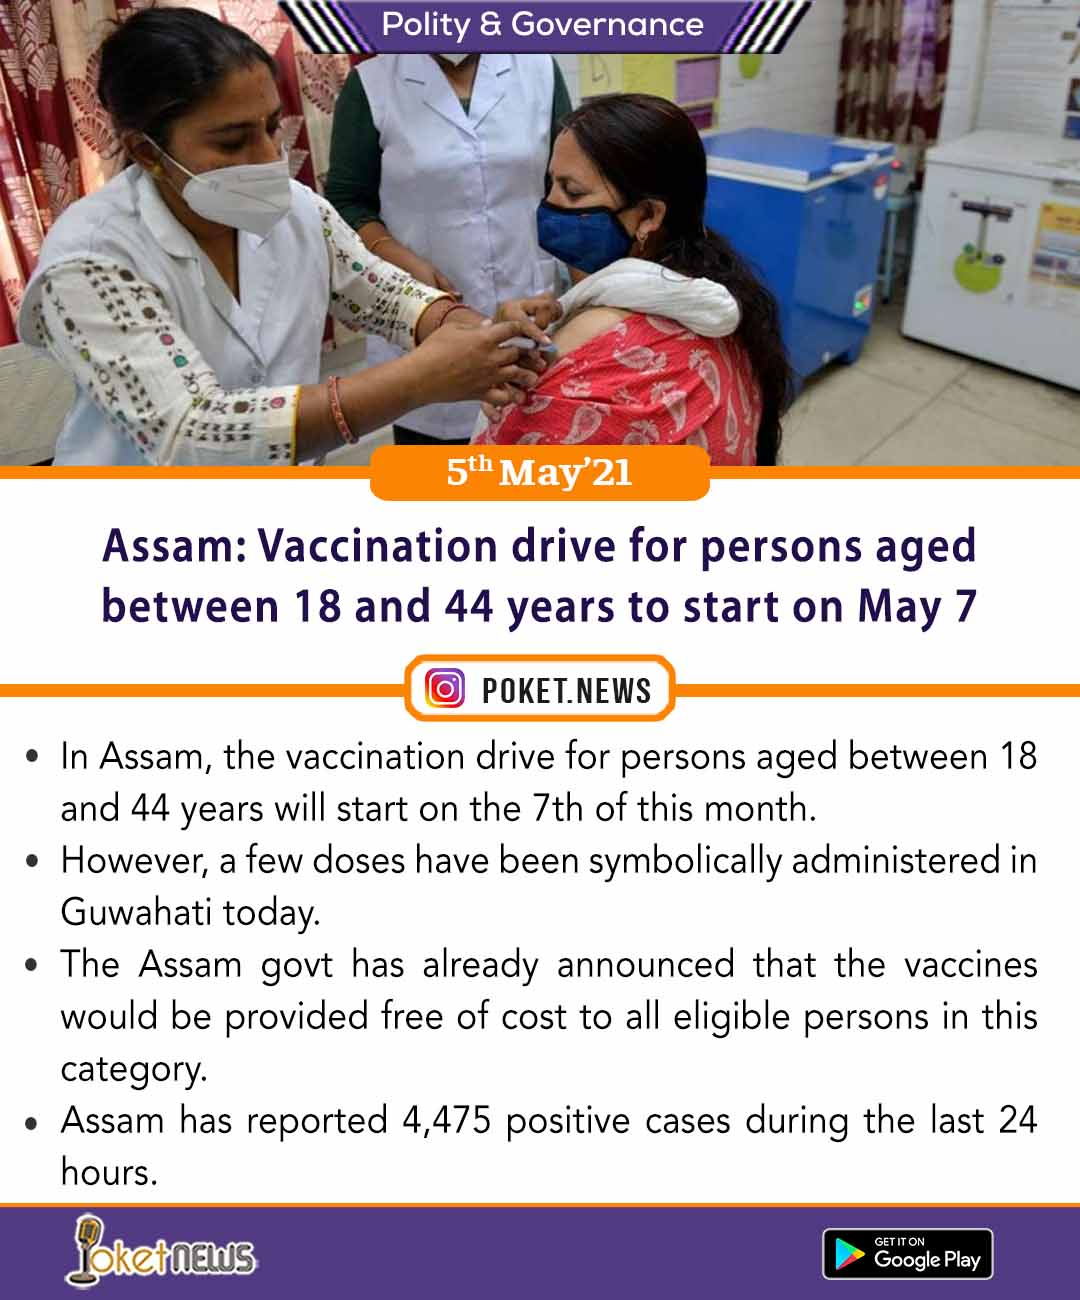 Assam: Vaccination drive for persons aged between 18 and 44 years to start on May 7